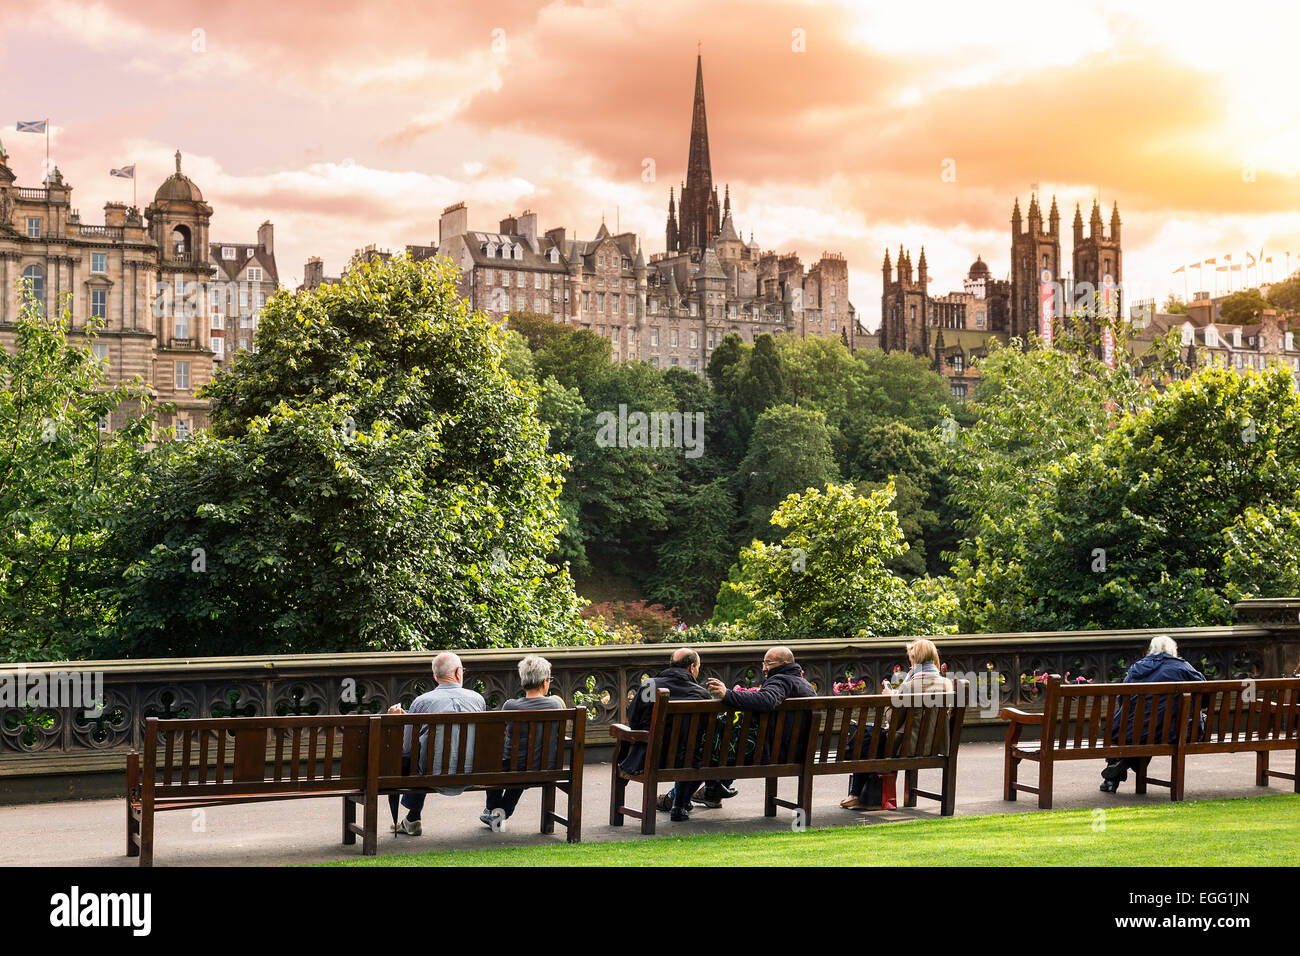 Group of people relaxing in a garden, Princes Street Gardens, Edinburgh, Scotland - Stock Image